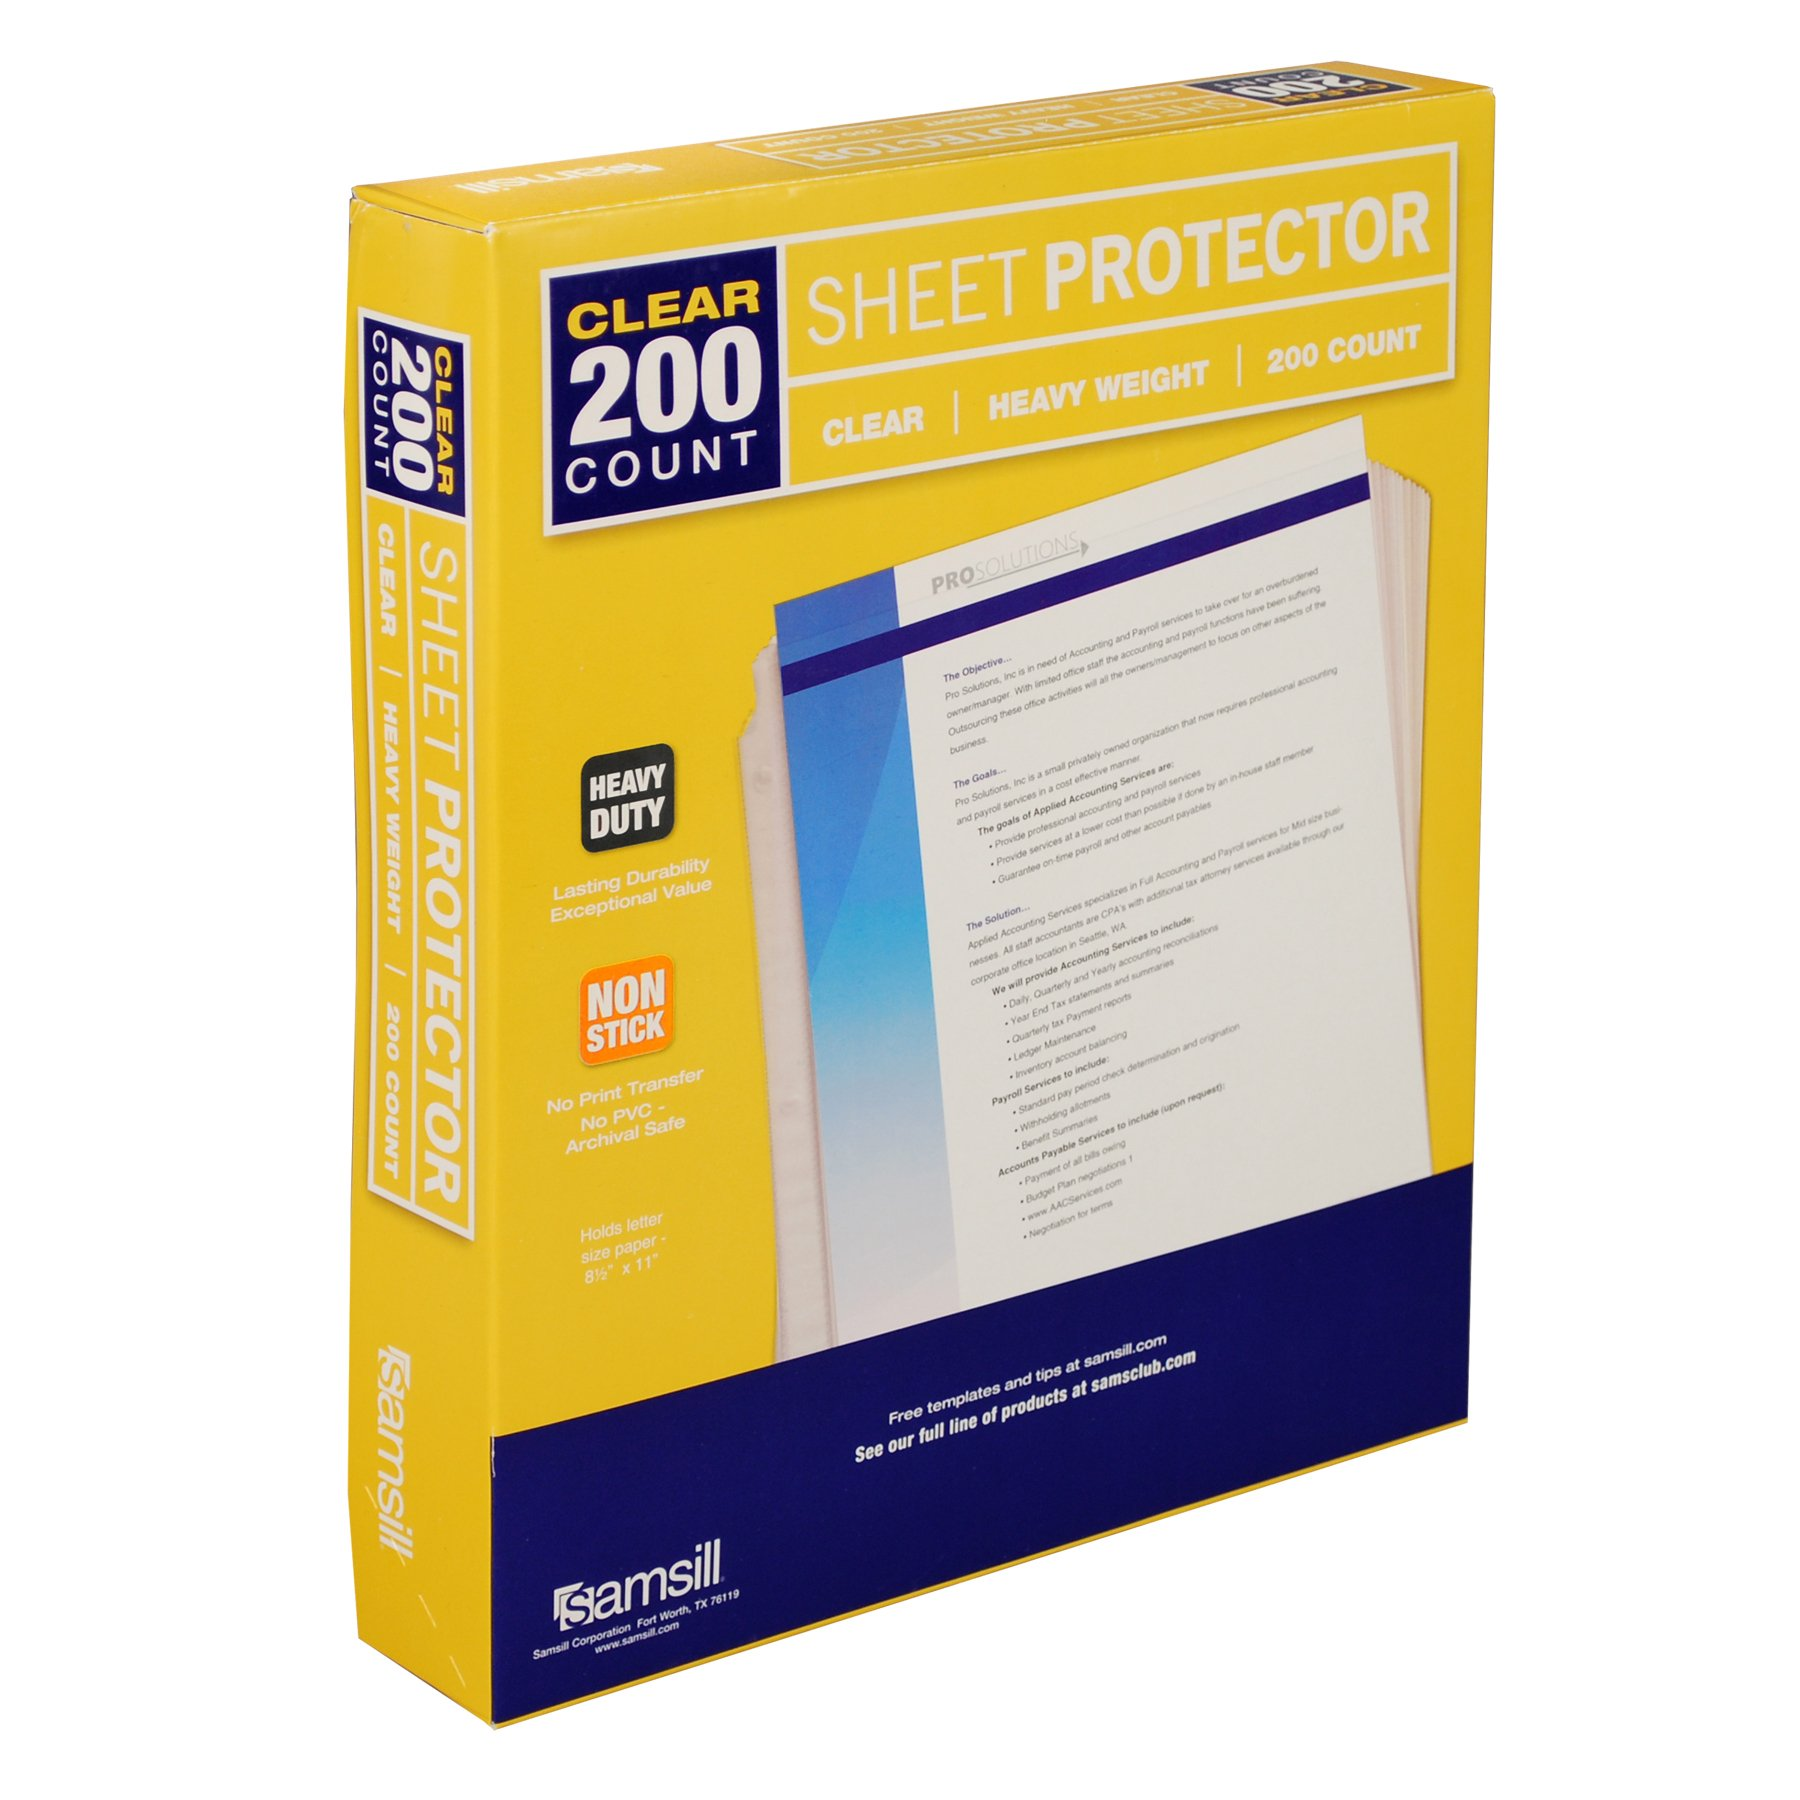 Samsill 200 Clear Heavyweight Sheet Protectors, Reinforced 3 Hole Design Plastic Page Protectors, Archival Safe, Top Load for 8.5 x 11 Inch Sheets, Box of 200 by Samsill